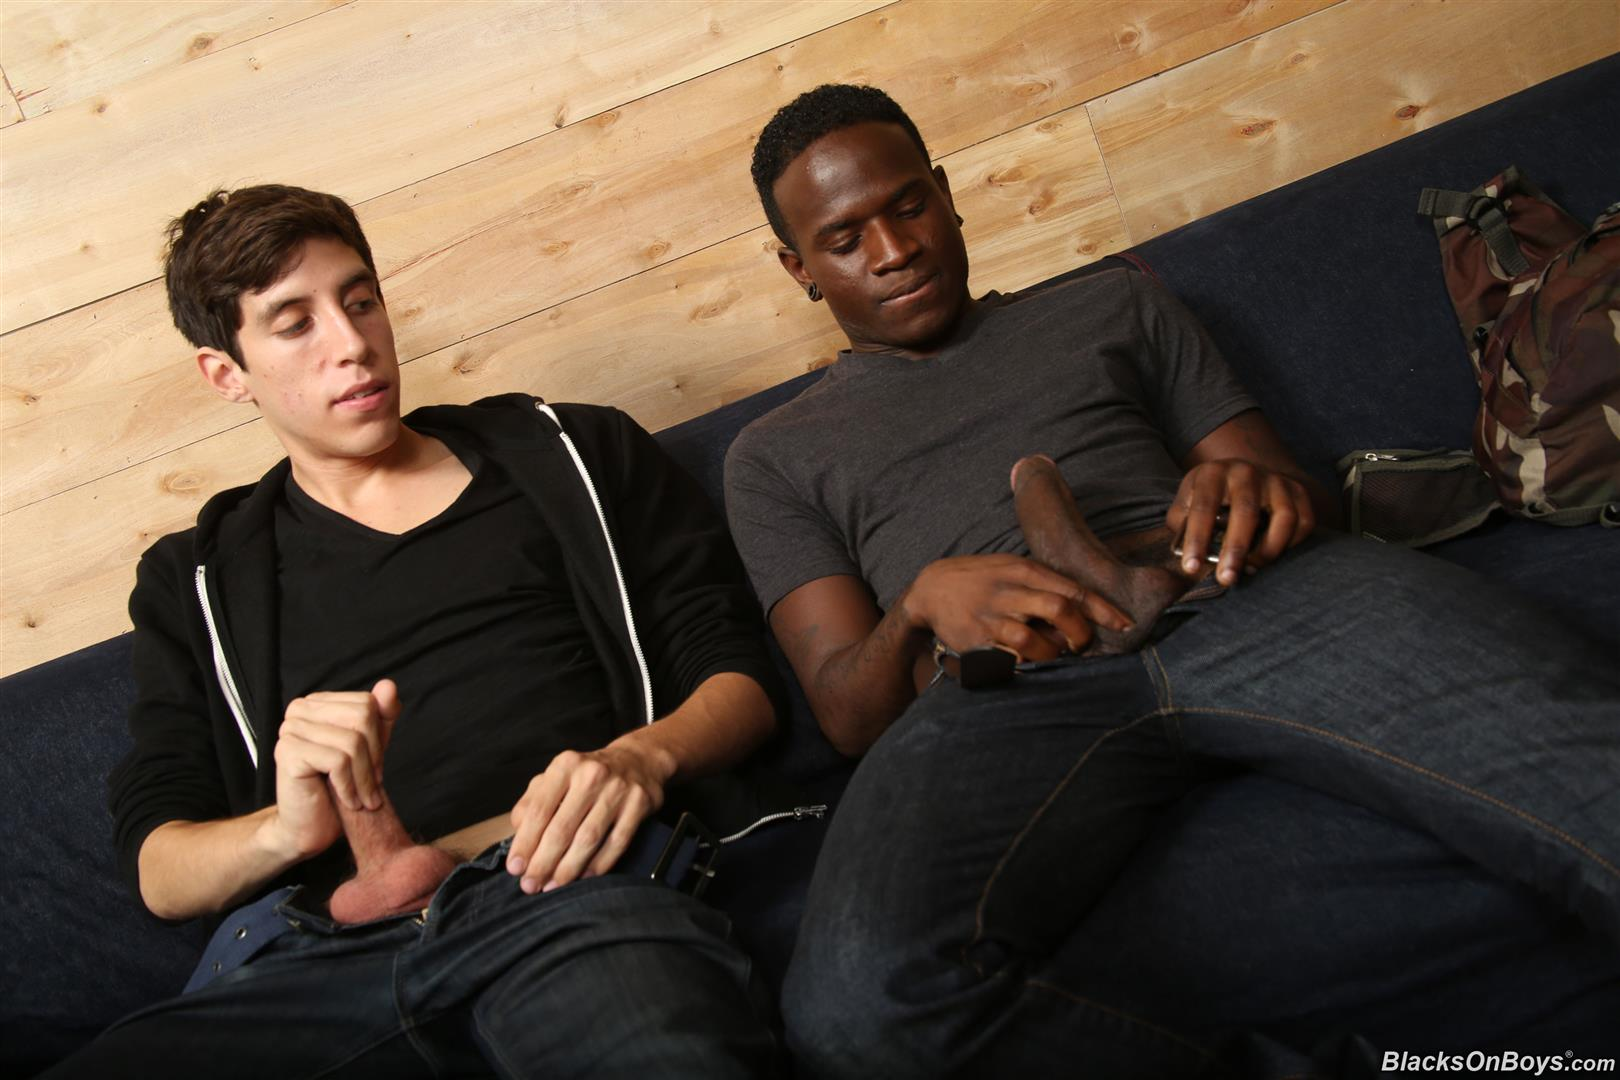 Blacks-On-Boys-Billy-Eastmore-and-Tyko-Interracial-Gay-Fucking-Amateur-Gay-Porn-03 Amateur College Dude Takes His First Big Black Cock Up The Ass